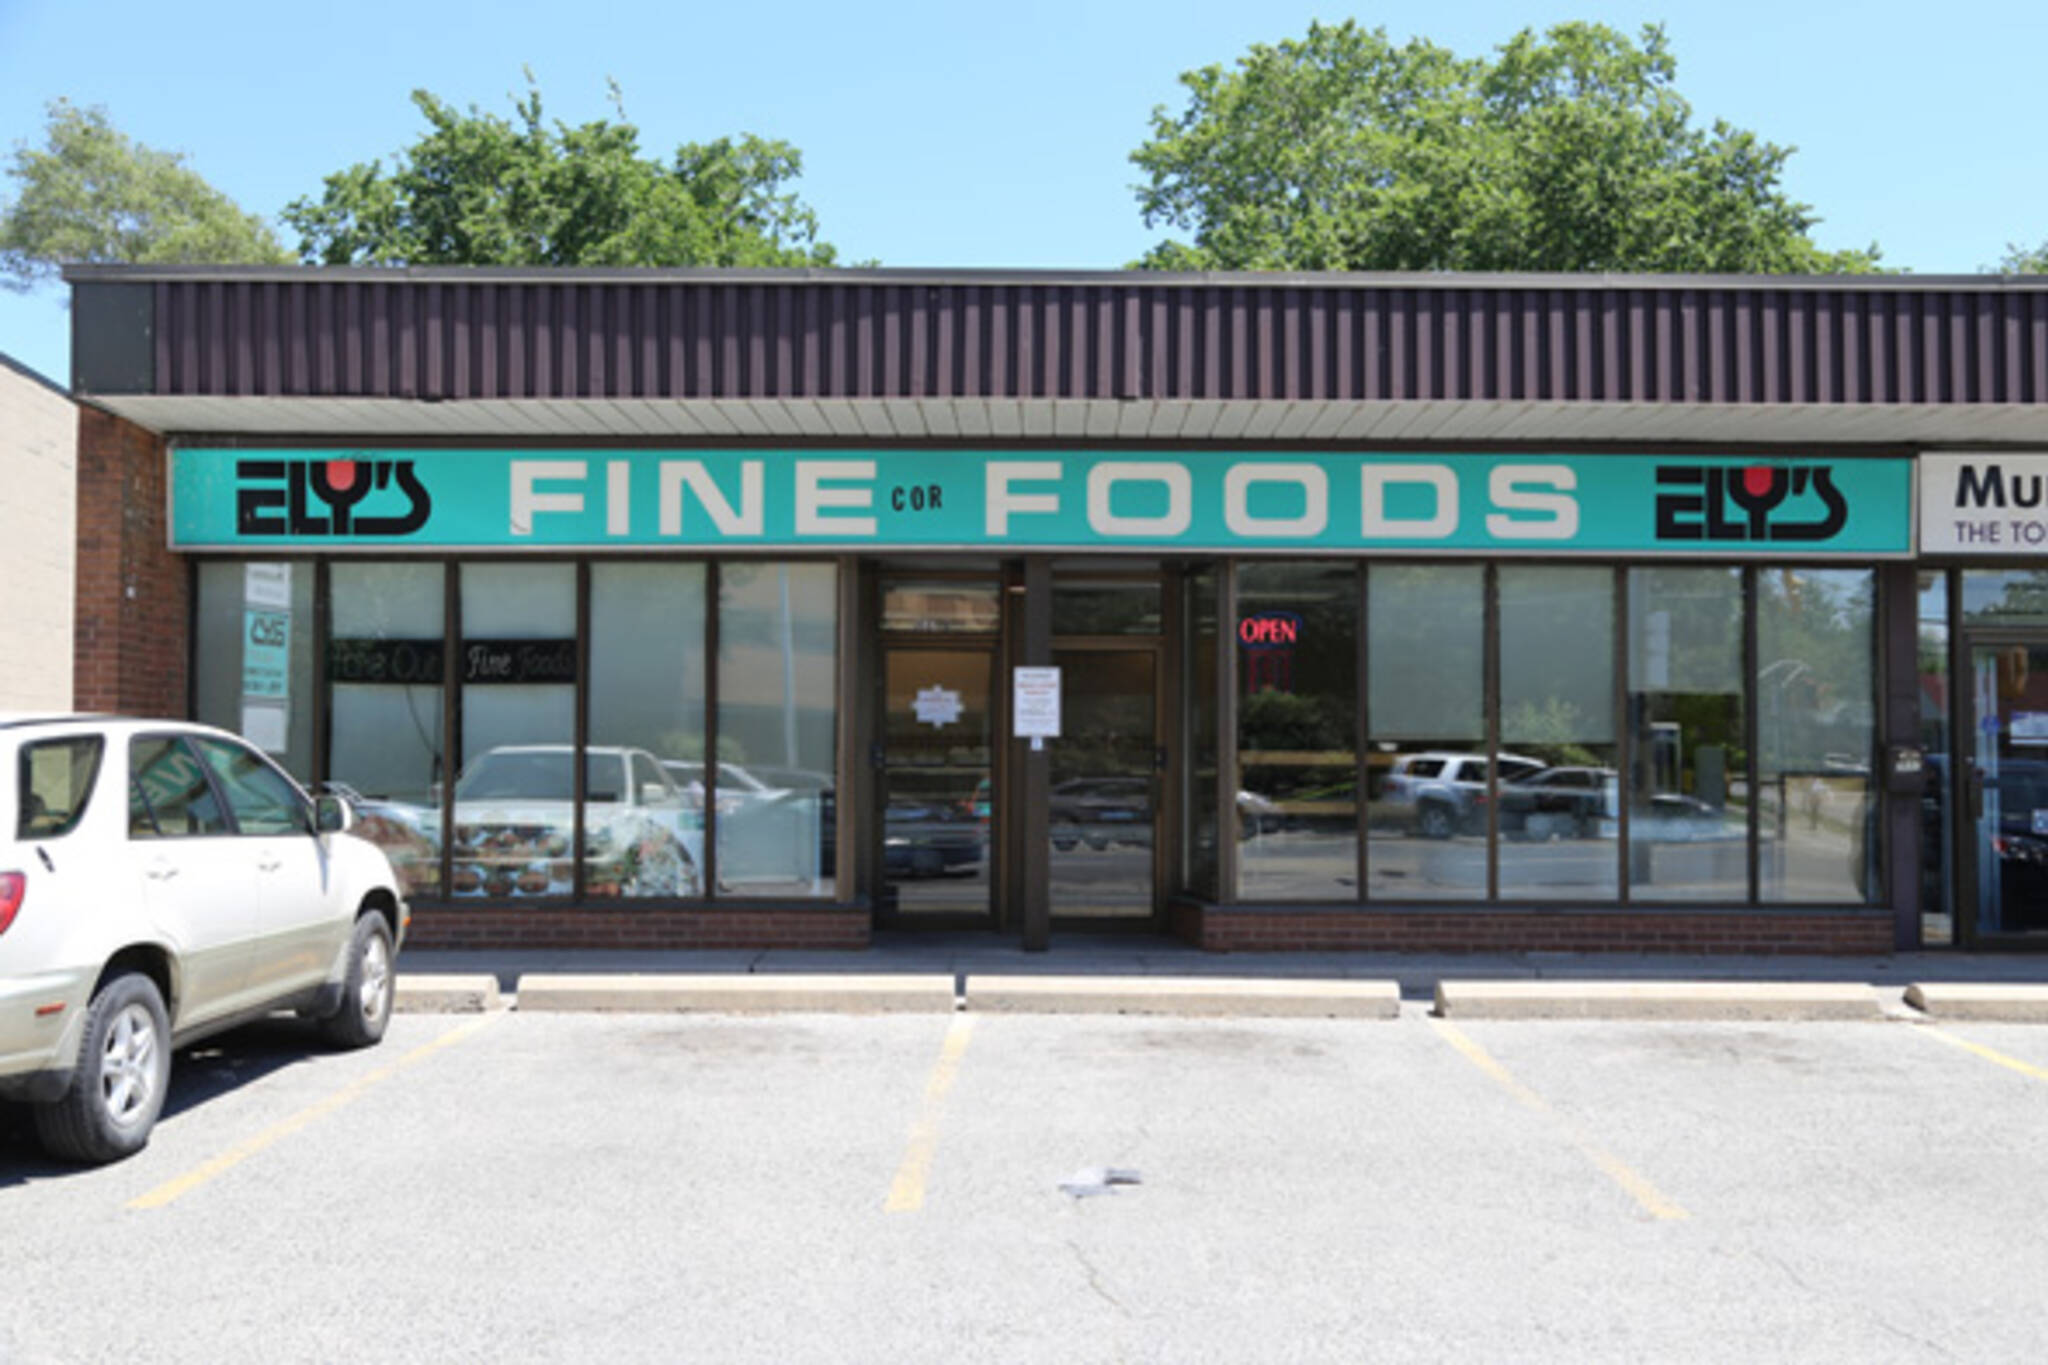 Ely's Fine Foods